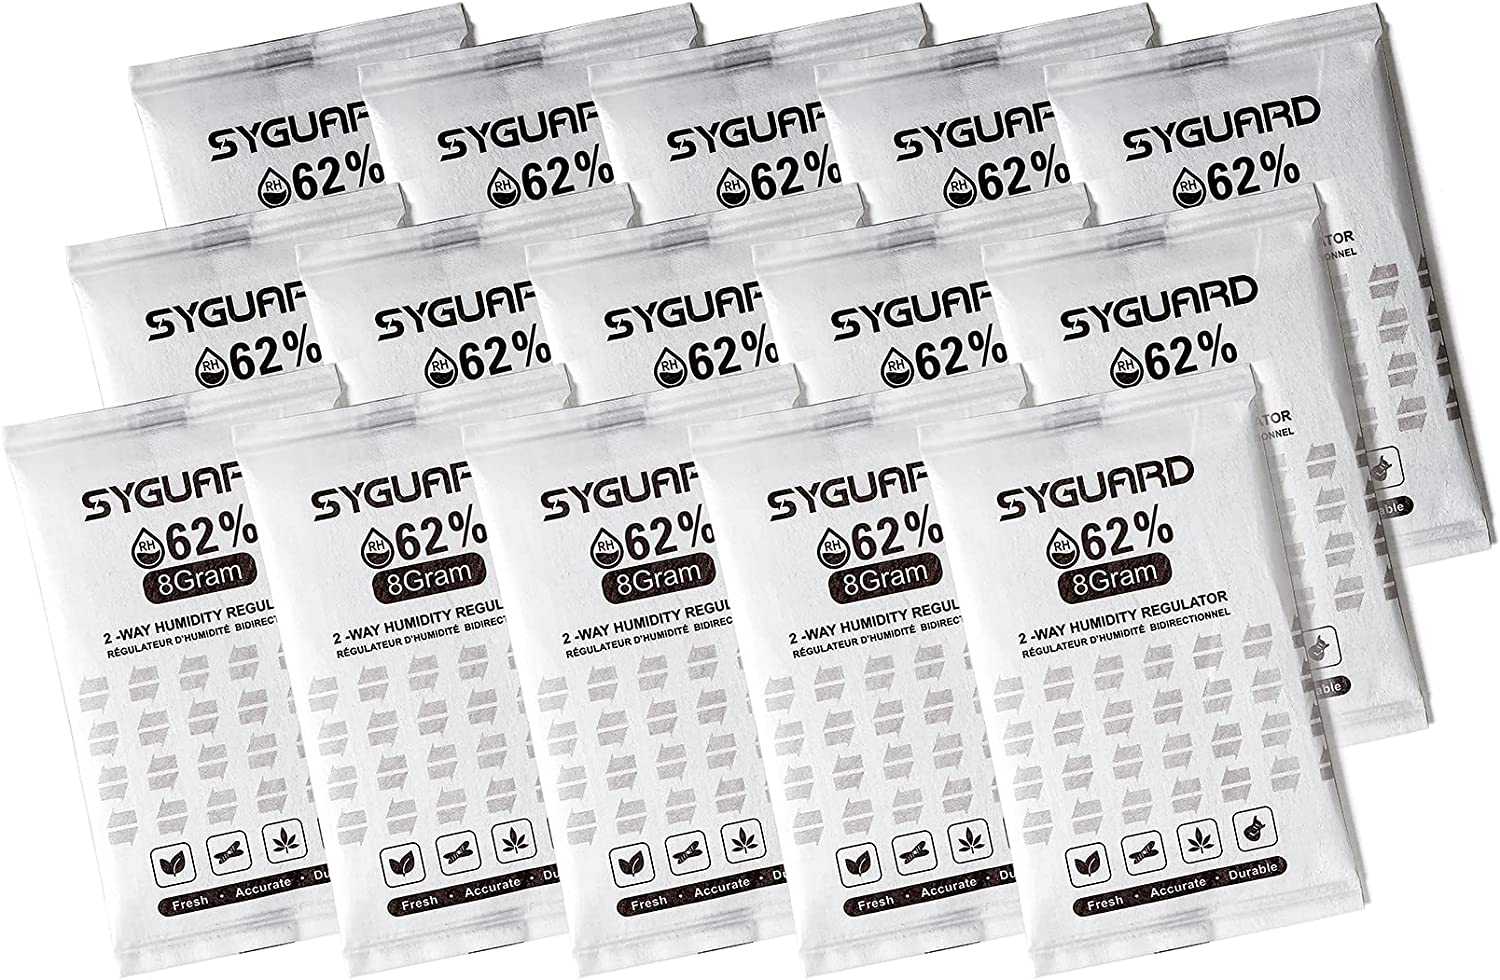 SyGuard 62% RH - 2 Way Humidity Regulator   For Packaging and Storing Moisture Sensitive Products   8 Gram   15-Count   with Resealable Bag (15)